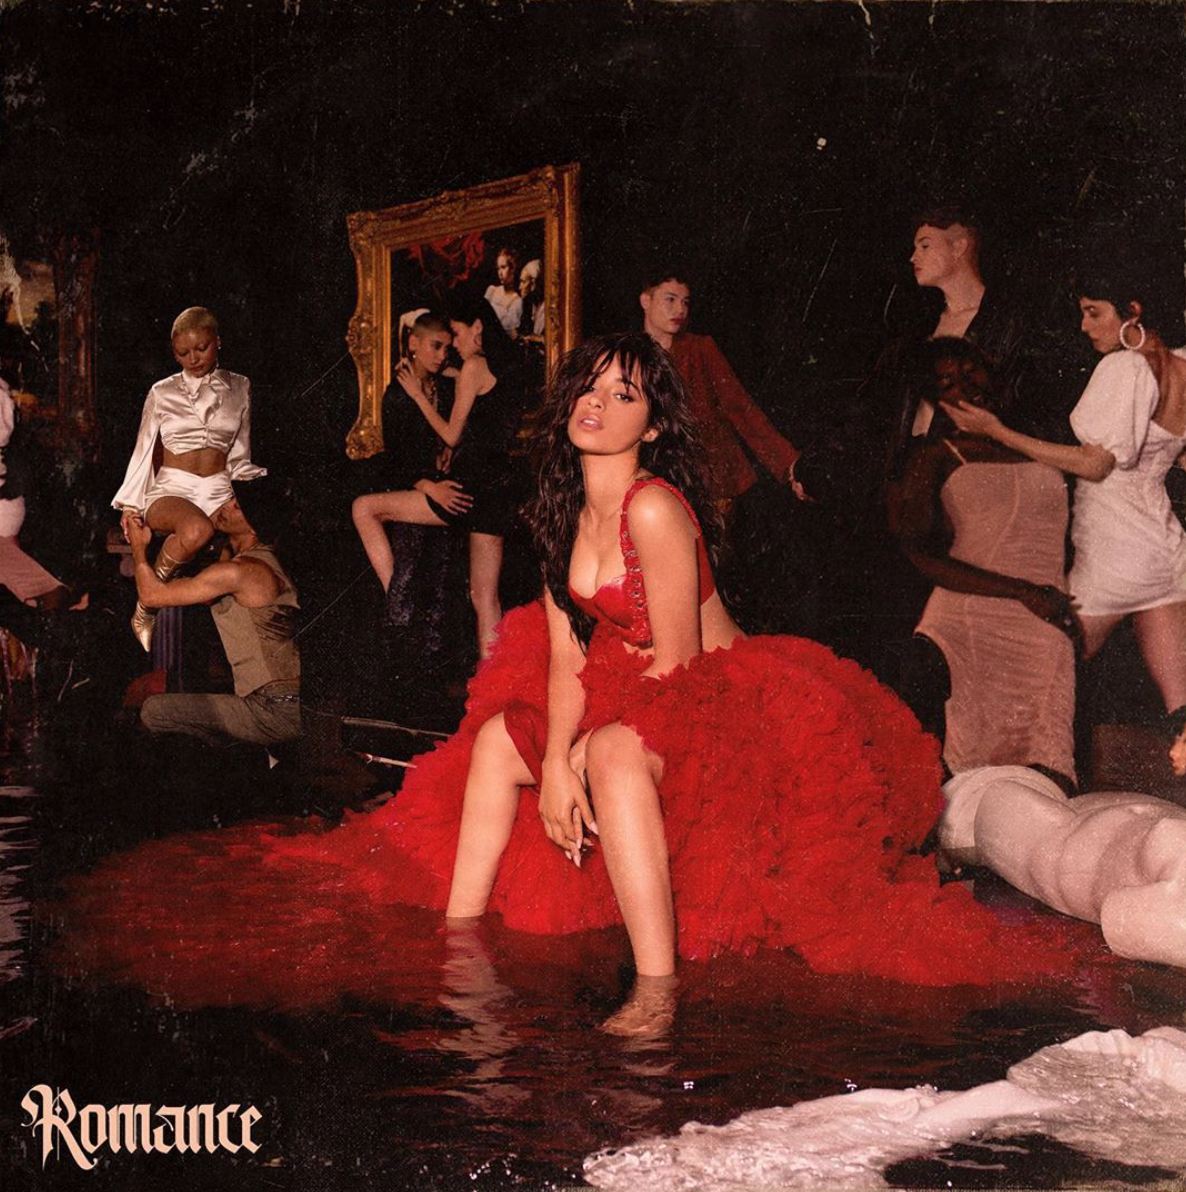 Cabello announced the release of 'Romance' on Instagram, writing,